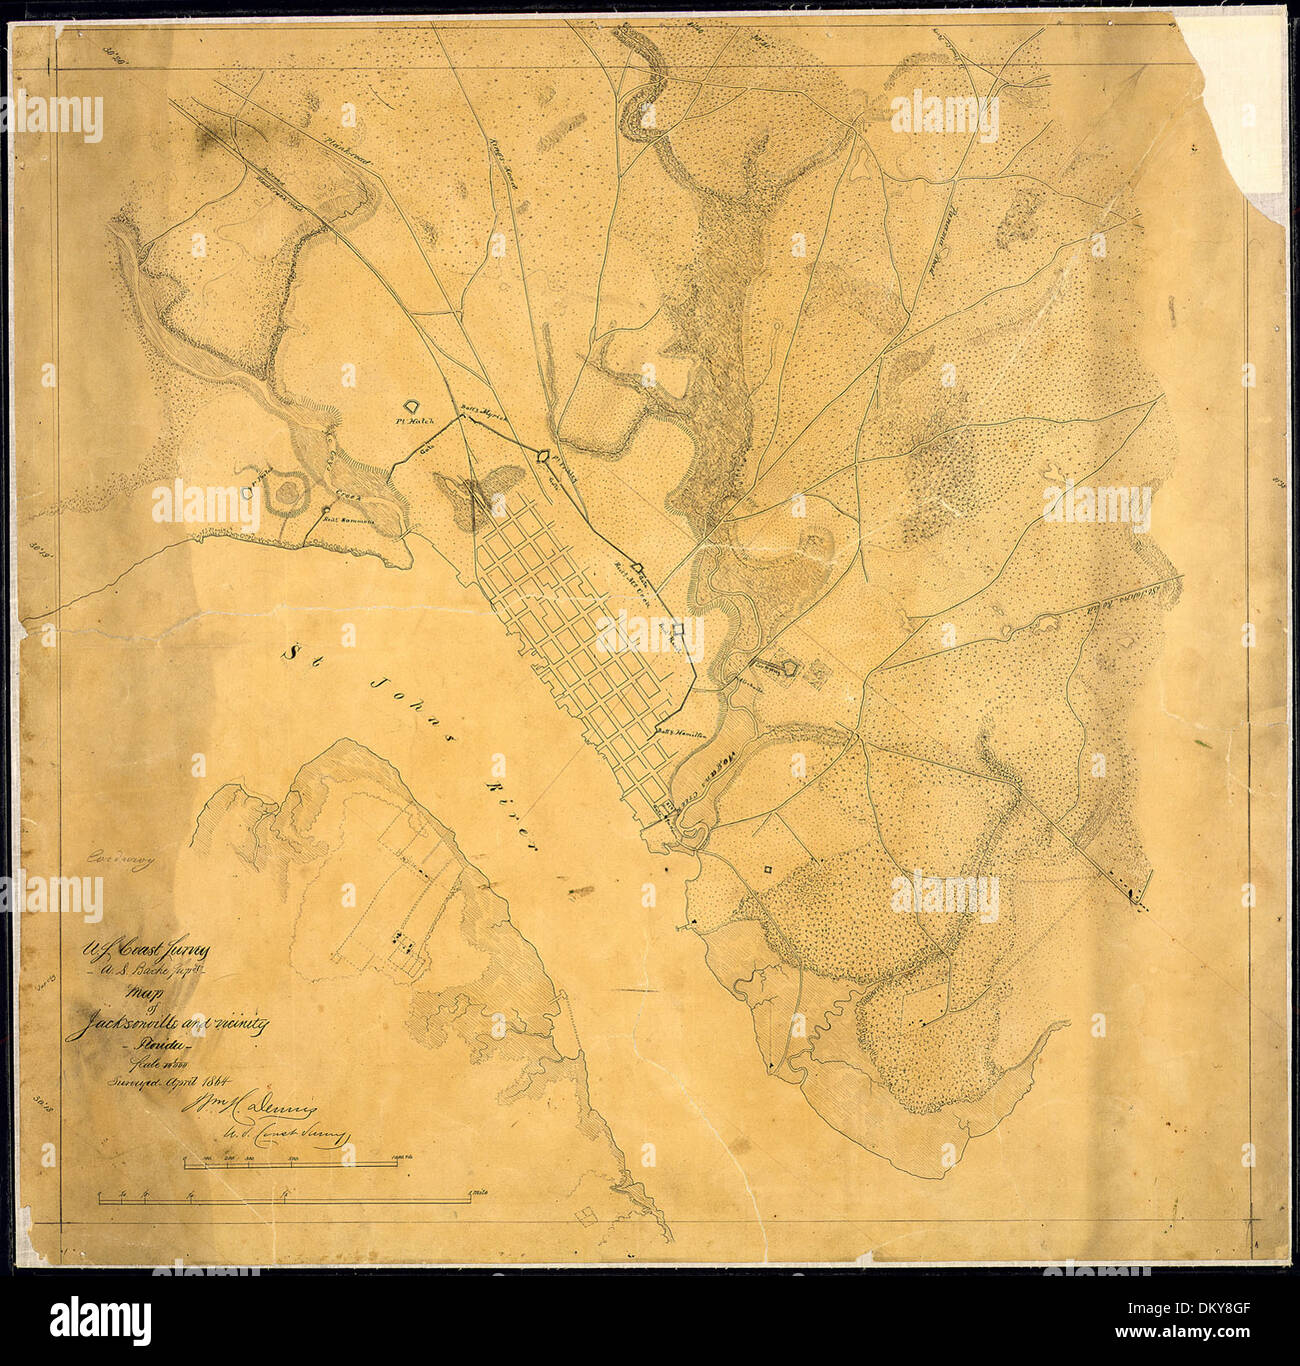 Map Of Jacksonville Florida.Old Map Of Jacksonville Stock Photos Old Map Of Jacksonville Stock